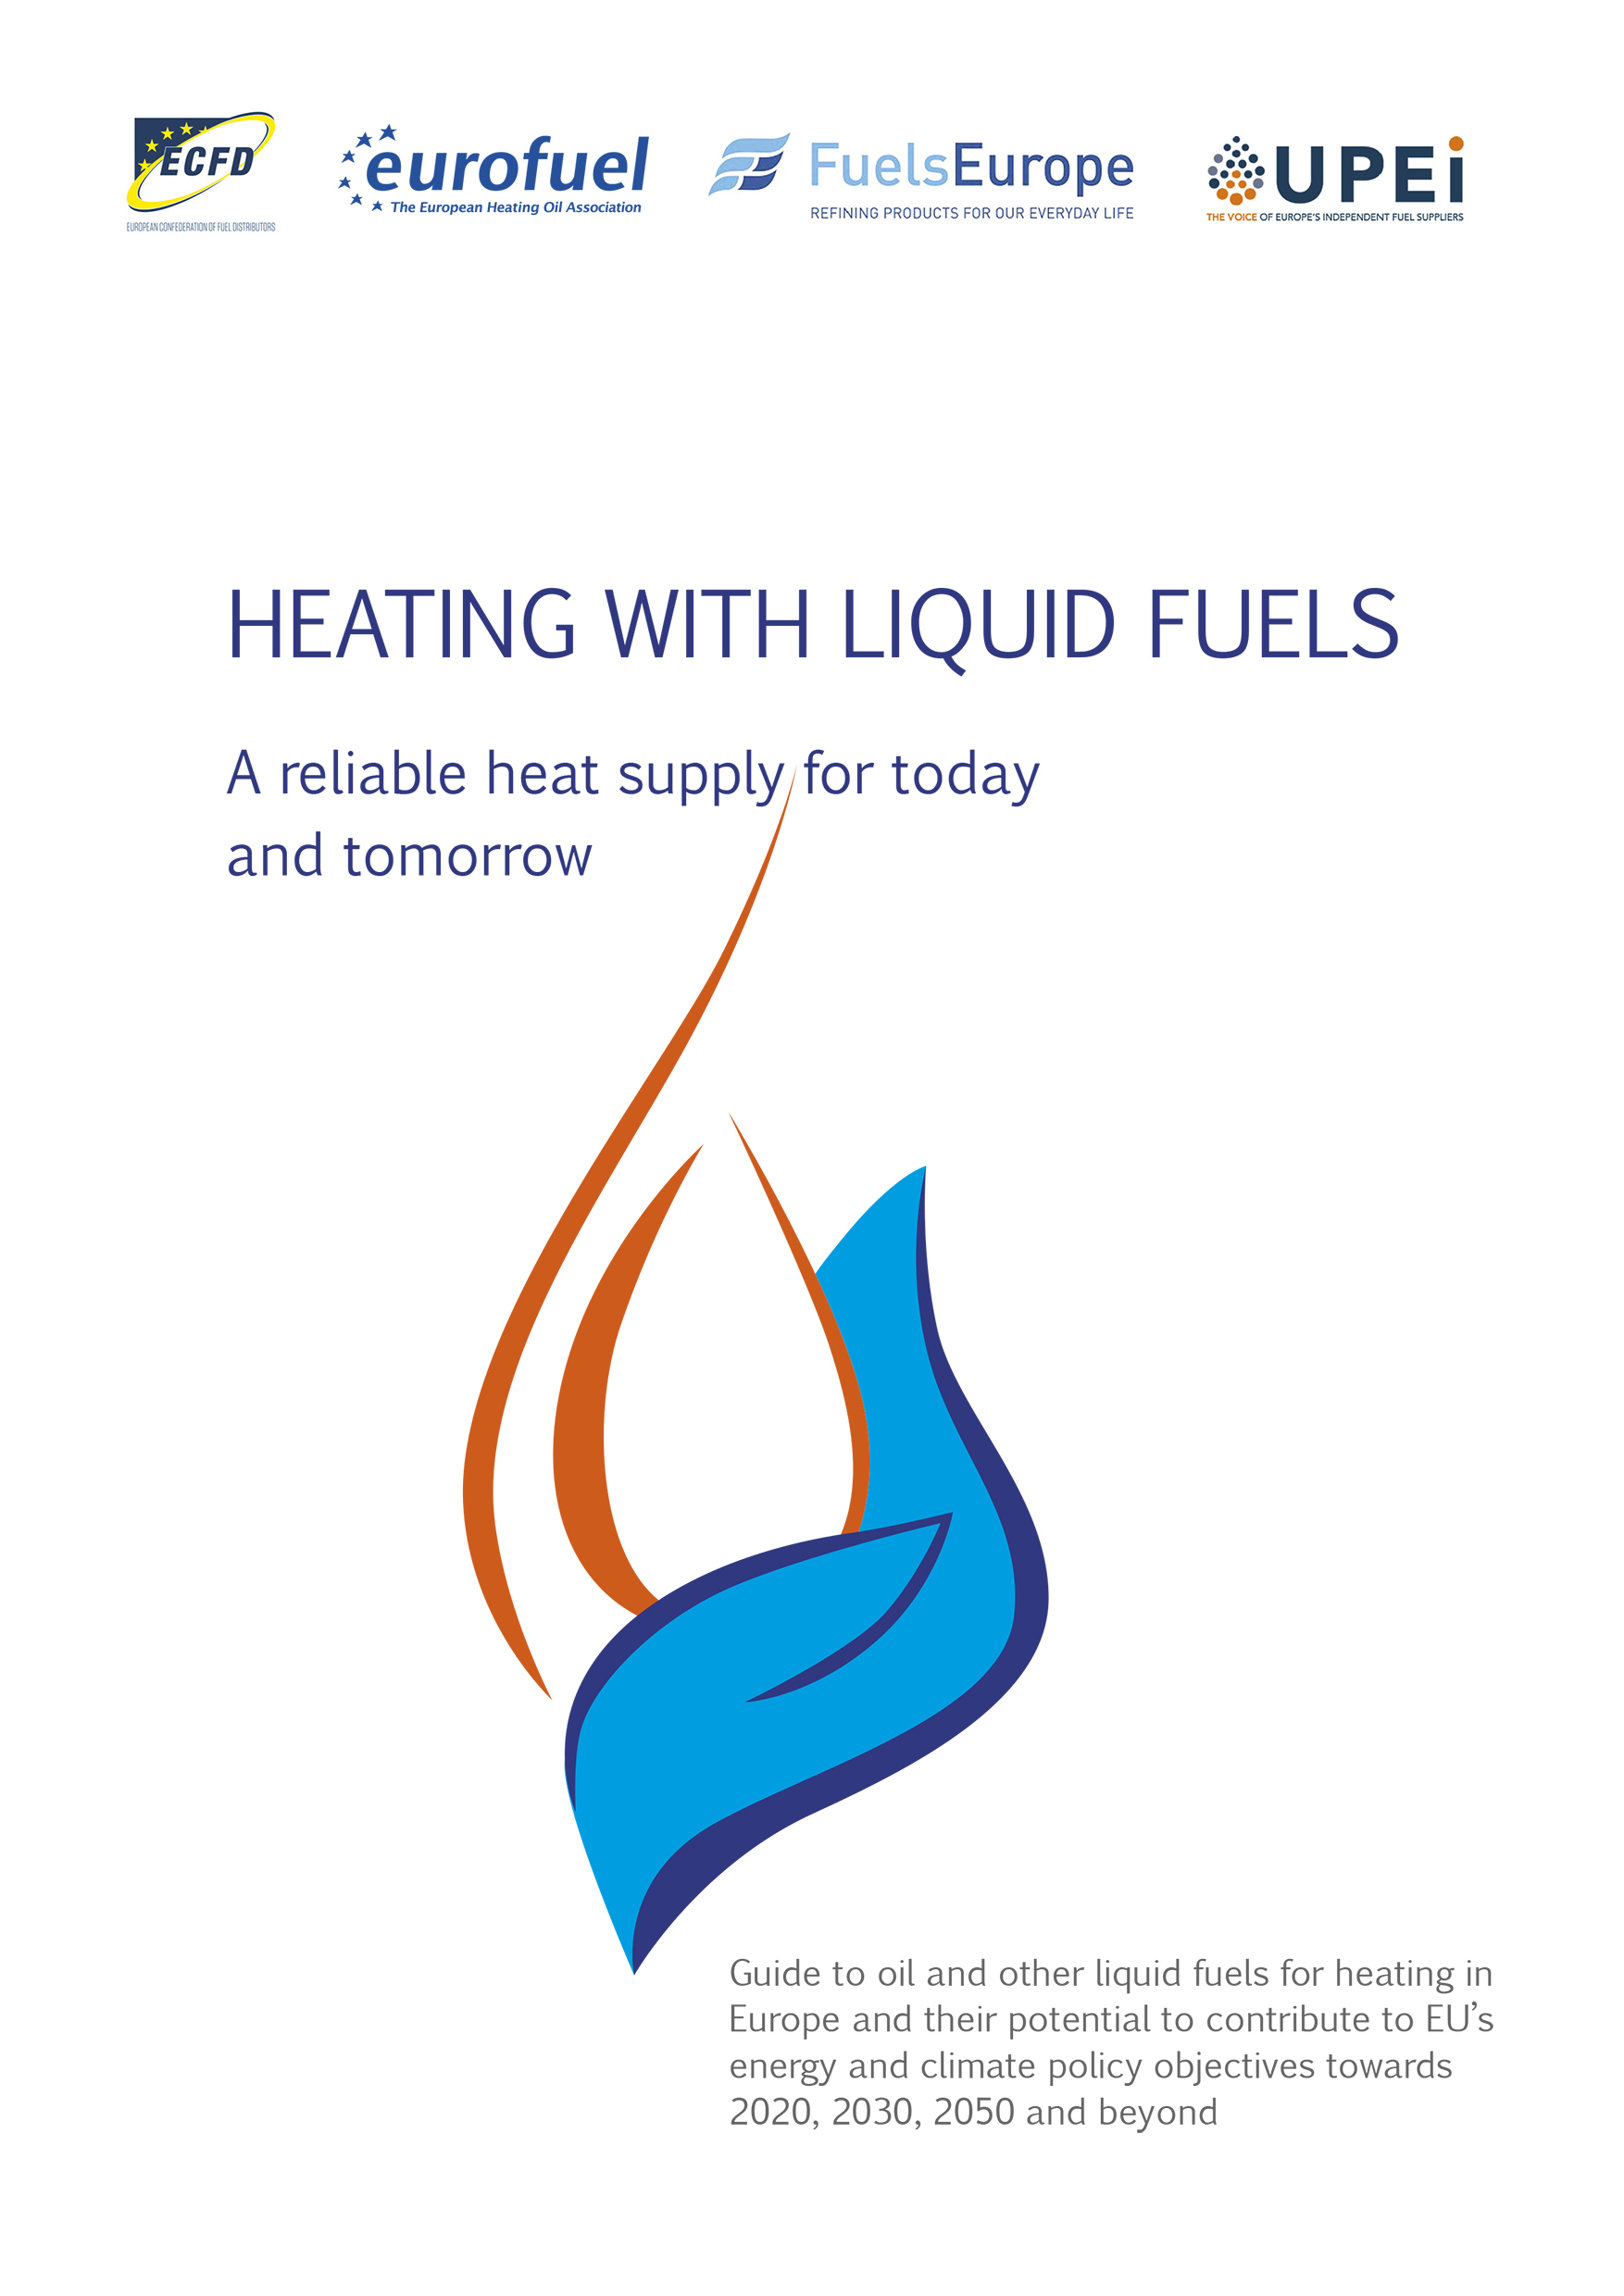 Heating with liquid fuels Image